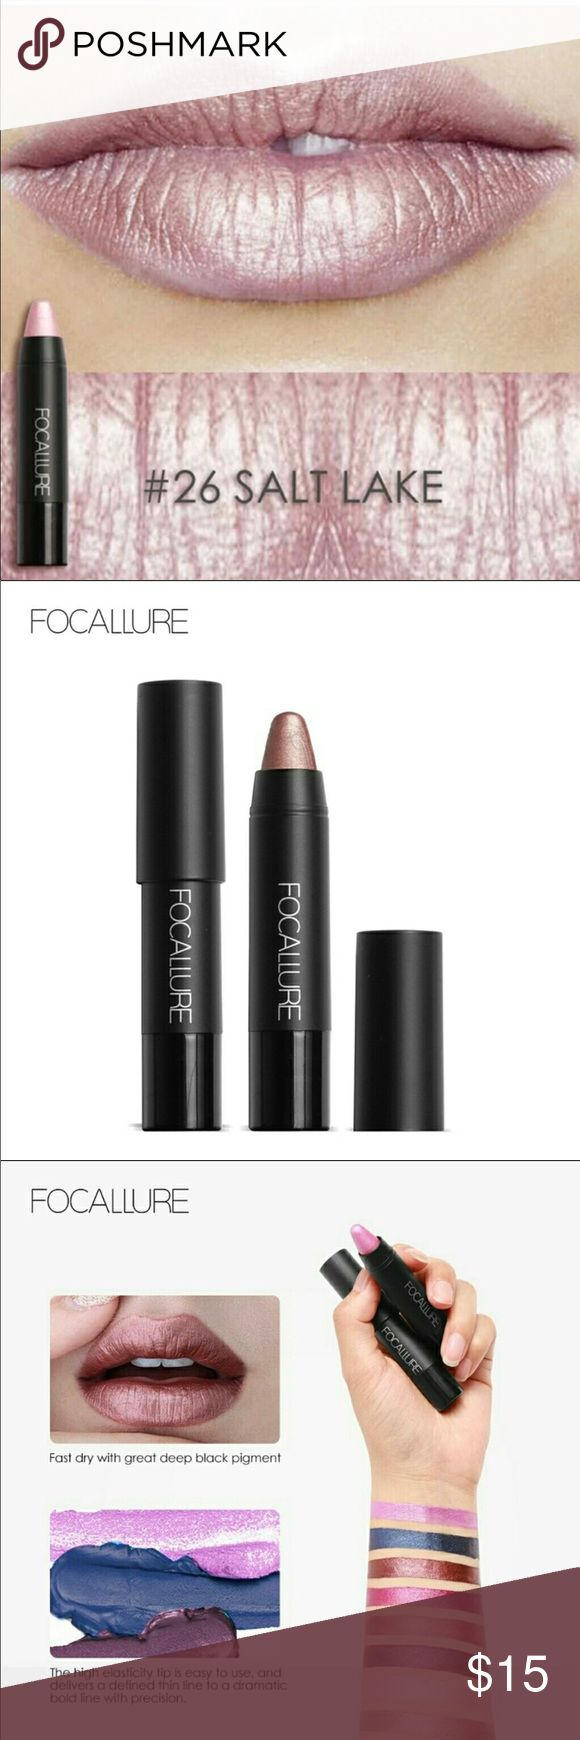 FOCALLURE Creamy Lip Color Crayon in #26 Salt Lake FOCALLURE Creamy Lip Color Crayon is a highly pigmented lipstick that glides on smoothly and stays put! Easy to outline and fill in color. Moisturizing while it works making luscious lips!   Color #26 SALT LAKE Full size net weight 0.1oz/3g Listing is for one lip crayon  Please feel free to ask questions! Thank you for shopping my closet! Happy Poshing! Makeup Lipstick